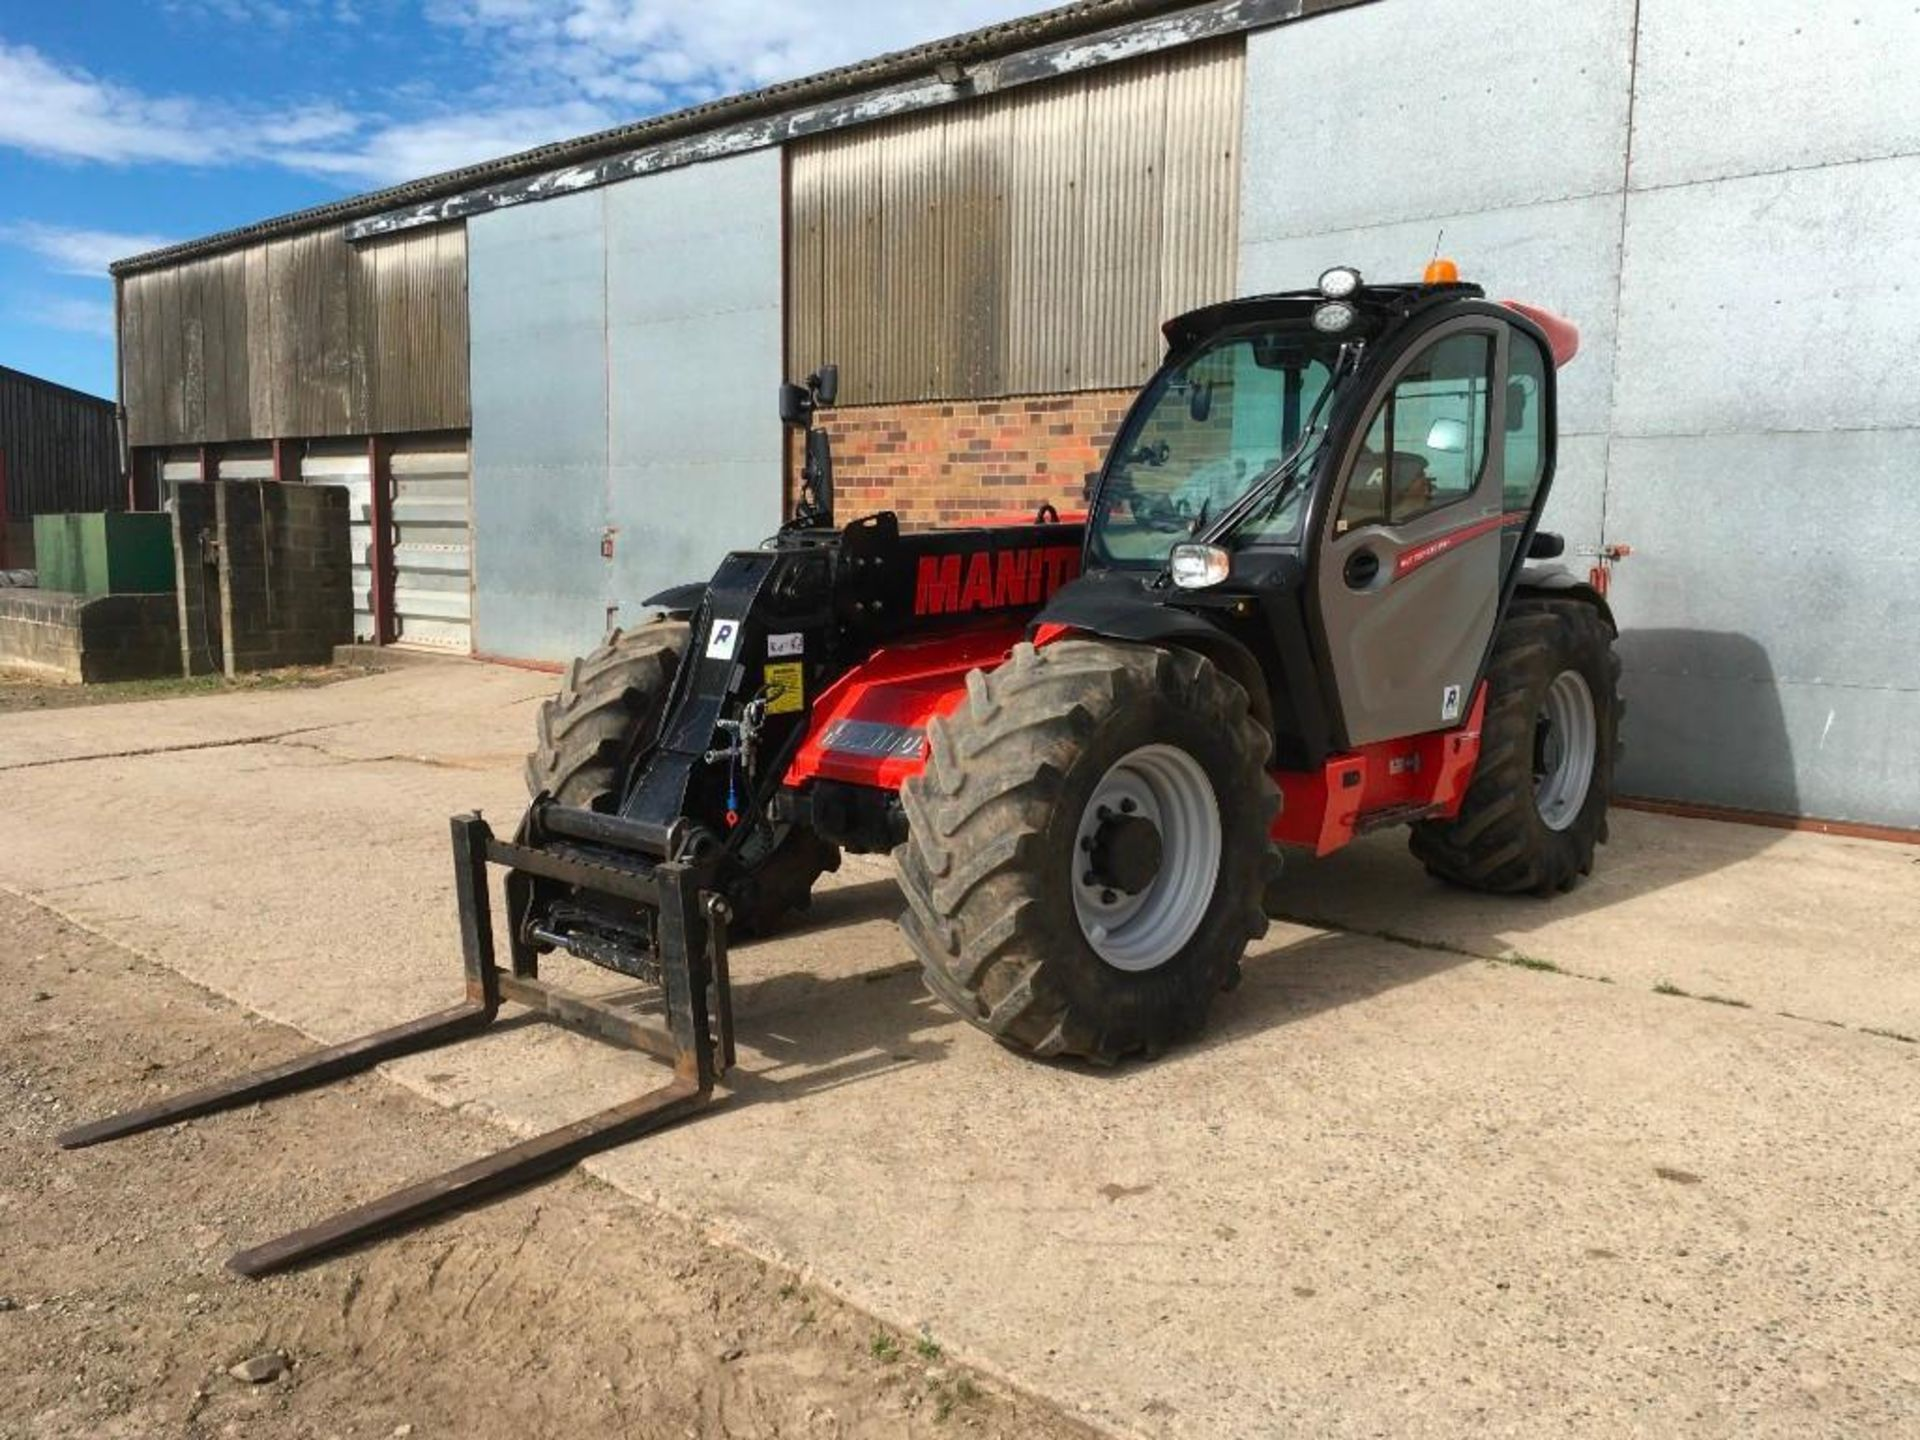 2017 Manitou MLT 737-130 PS+ Elite telehandler with rear pick up hitch, power shift, air seat, elect - Image 5 of 22